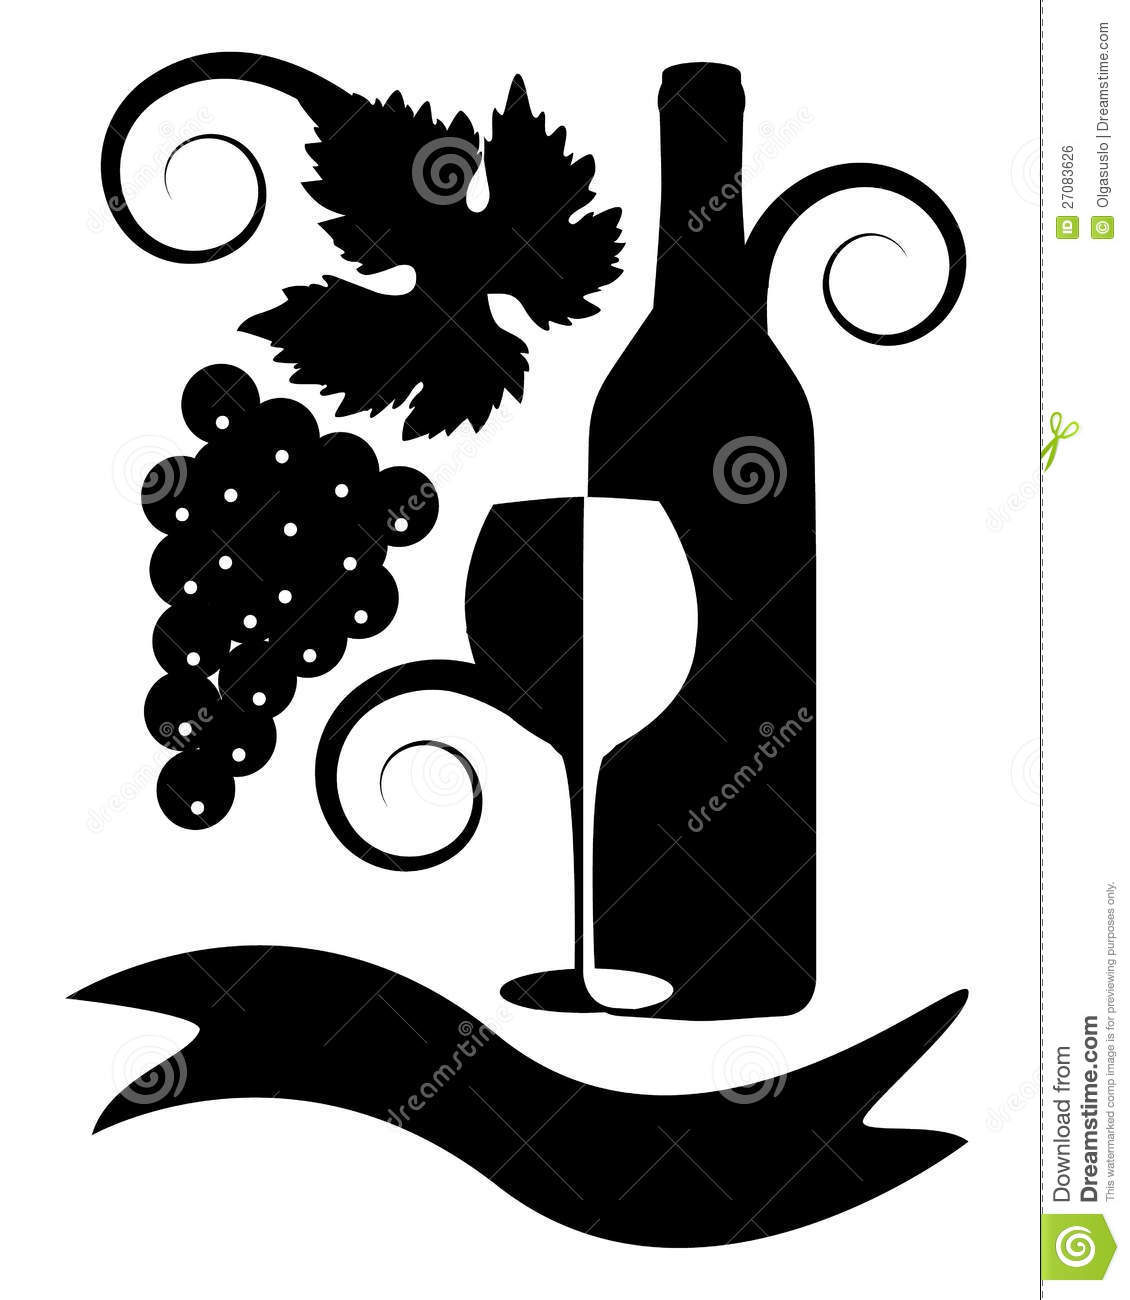 Black-and-white Image Of Wine Stock Vector - Illustration ... (1130 x 1300 Pixel)